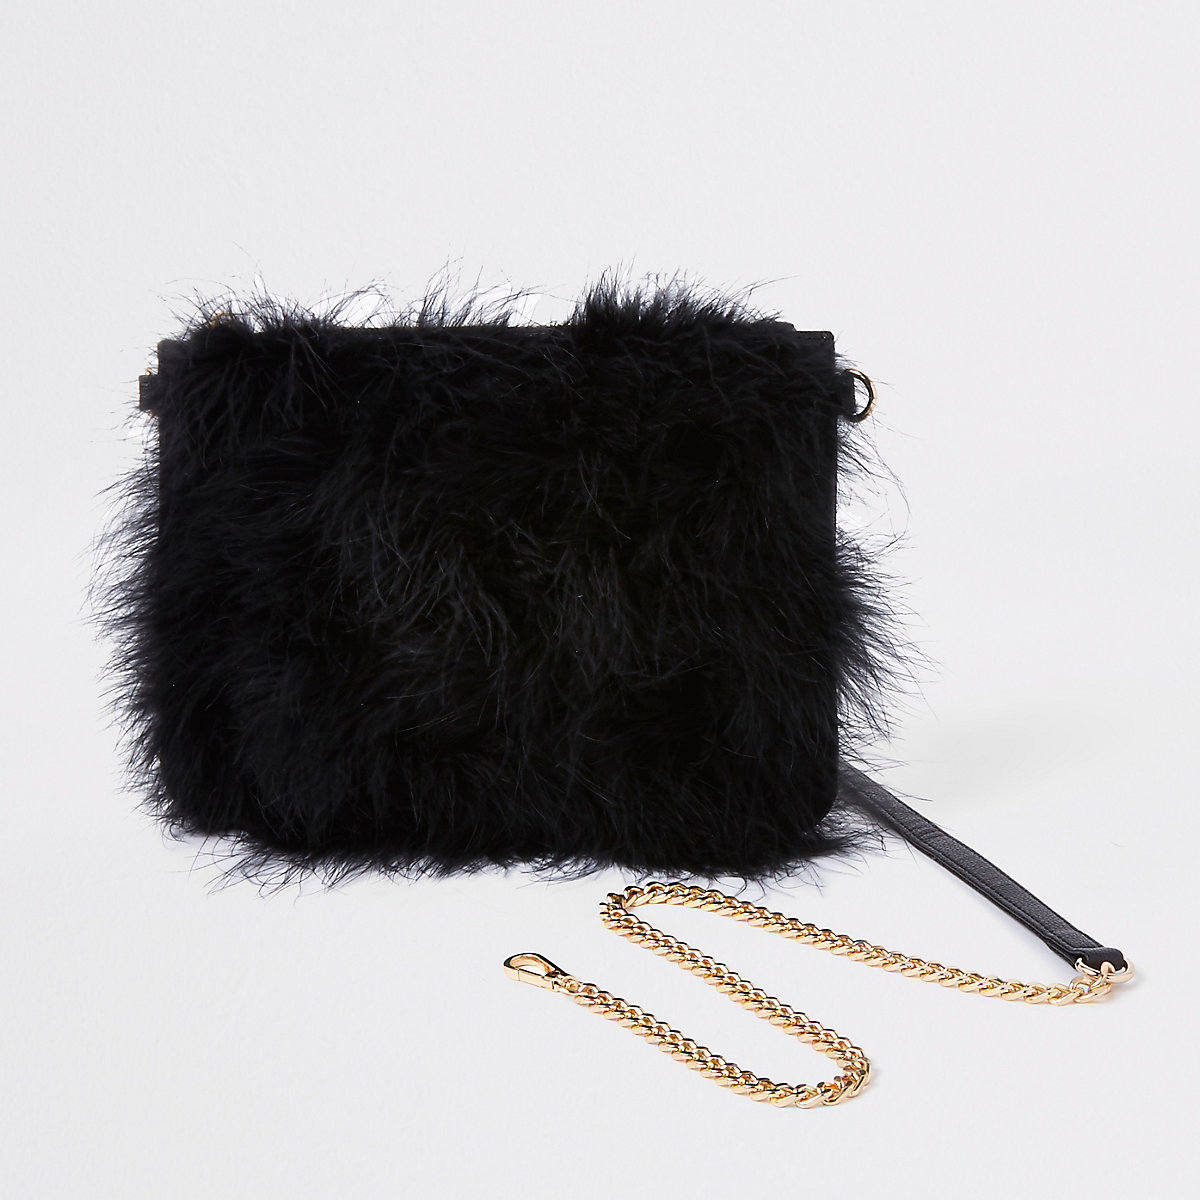 Black marabou feather cross body pouch bag